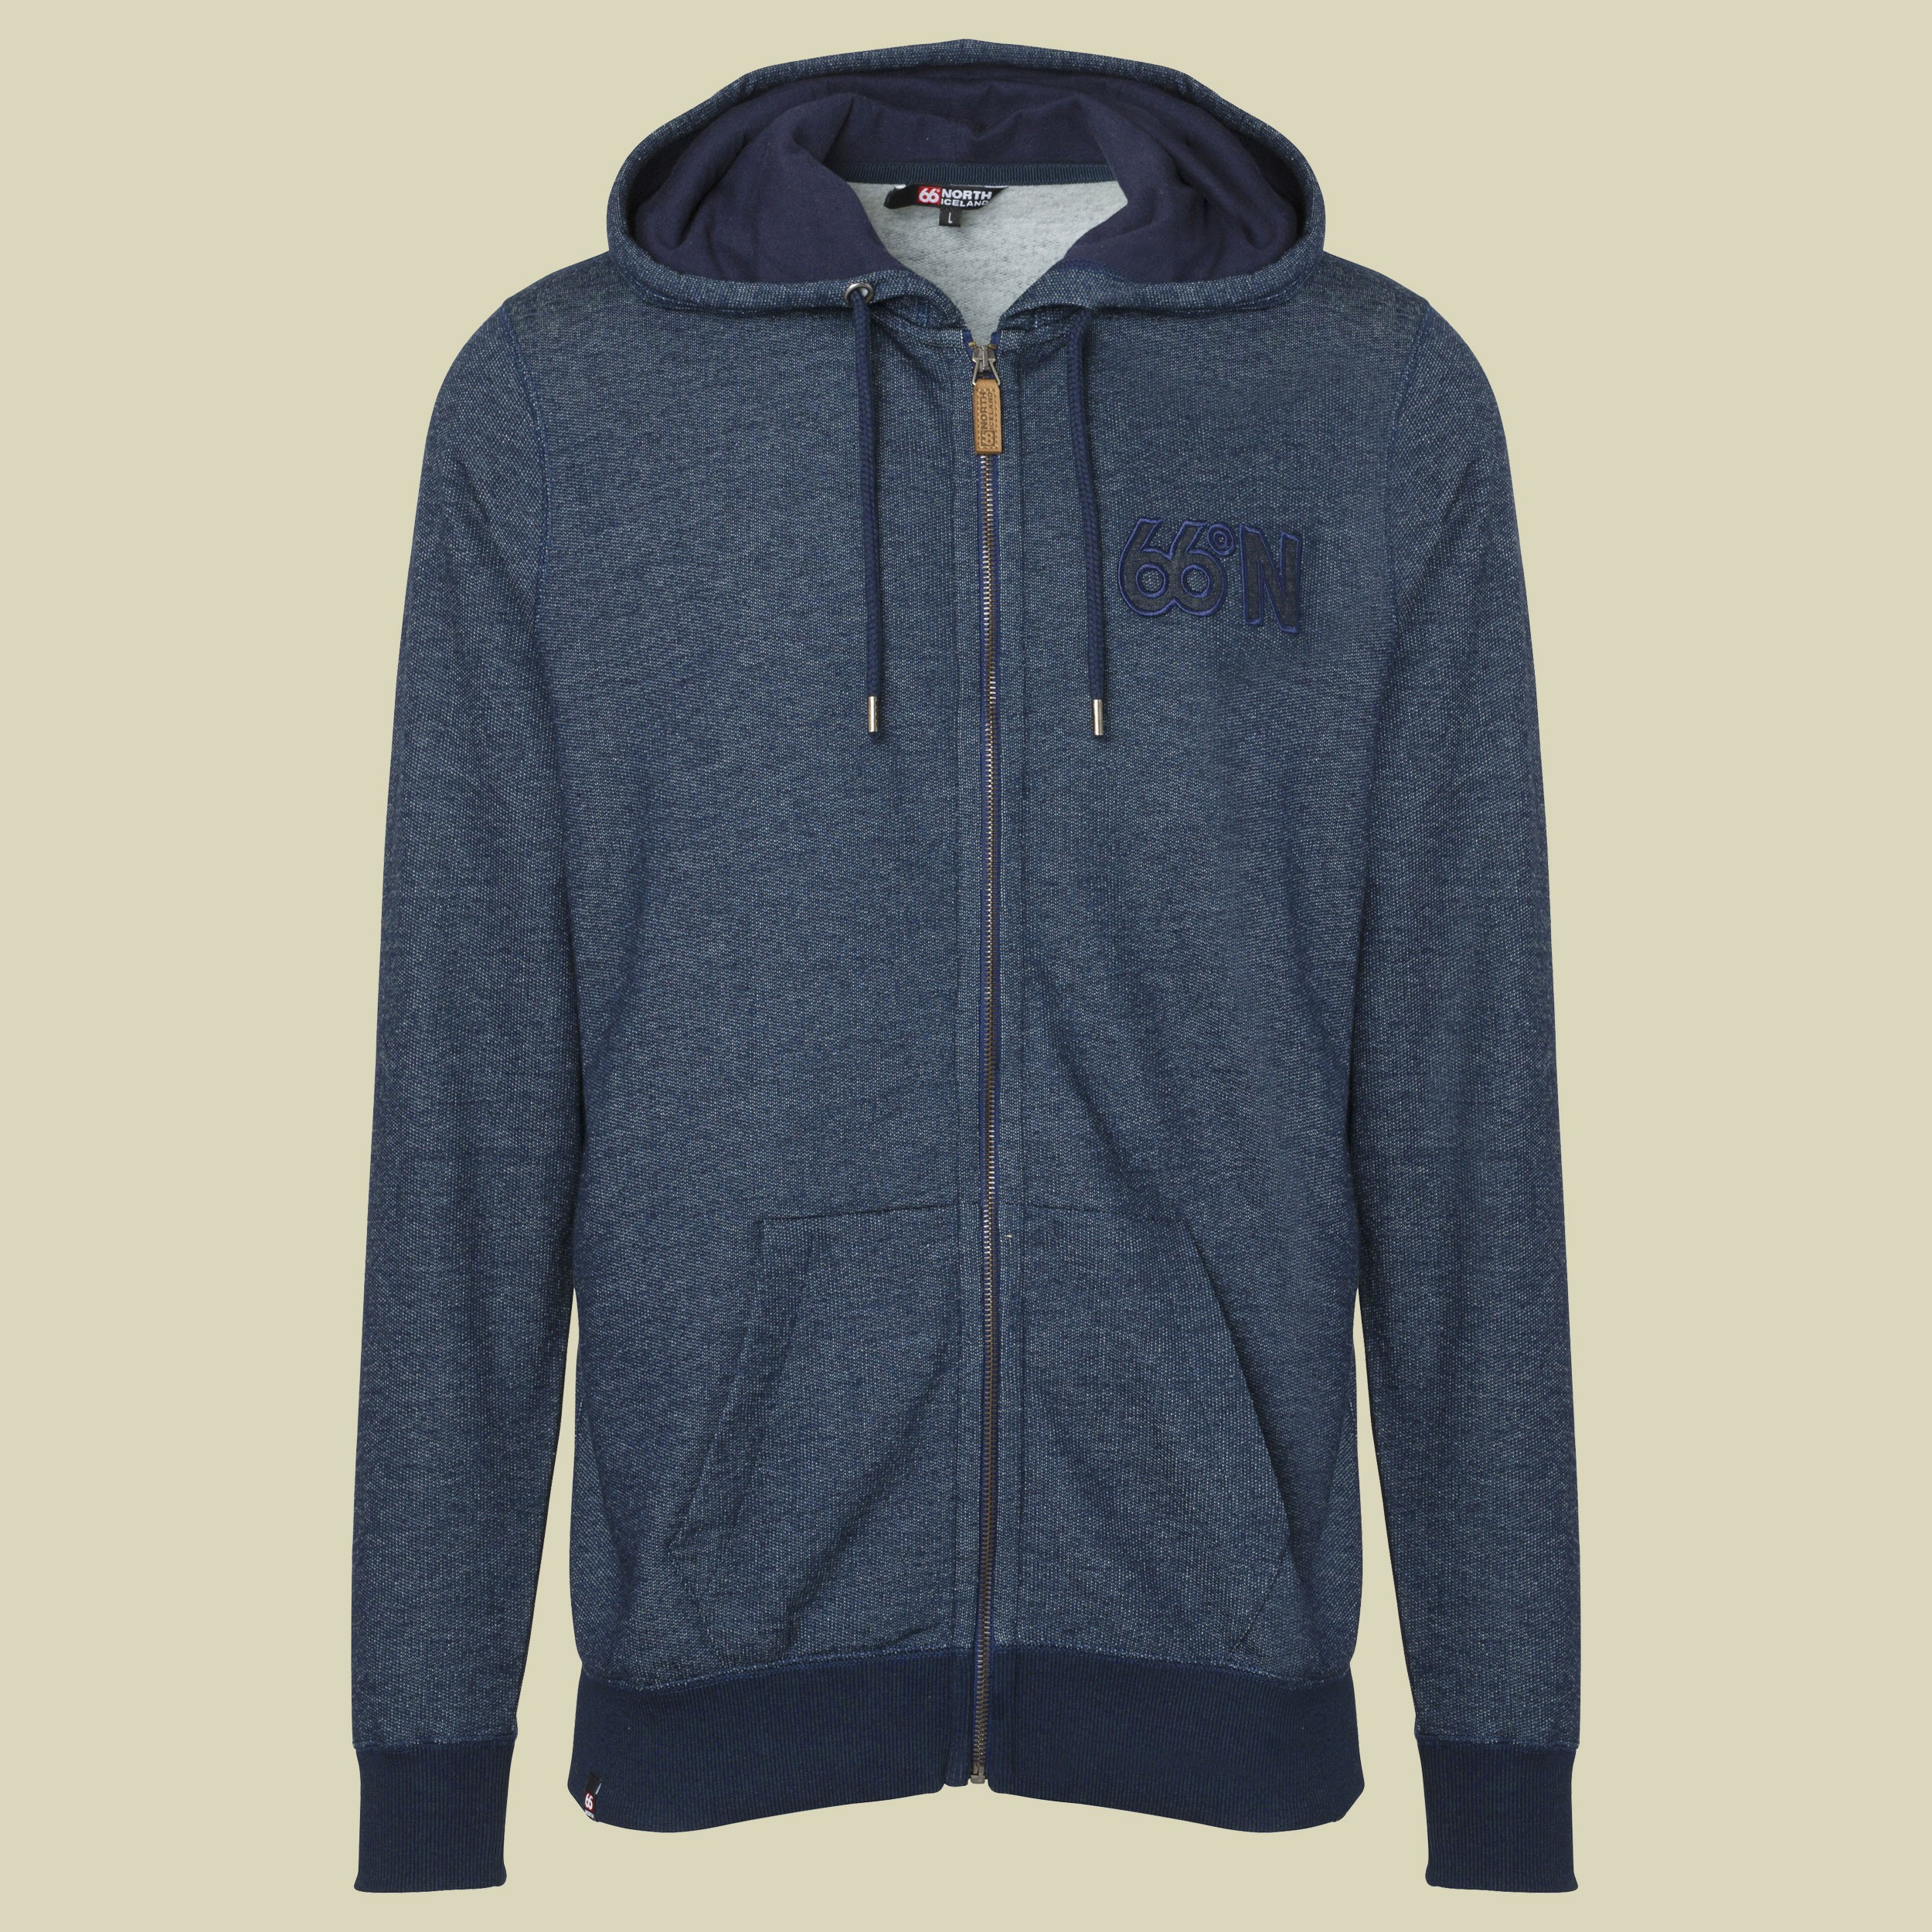 Logn Zipped Sweater Men